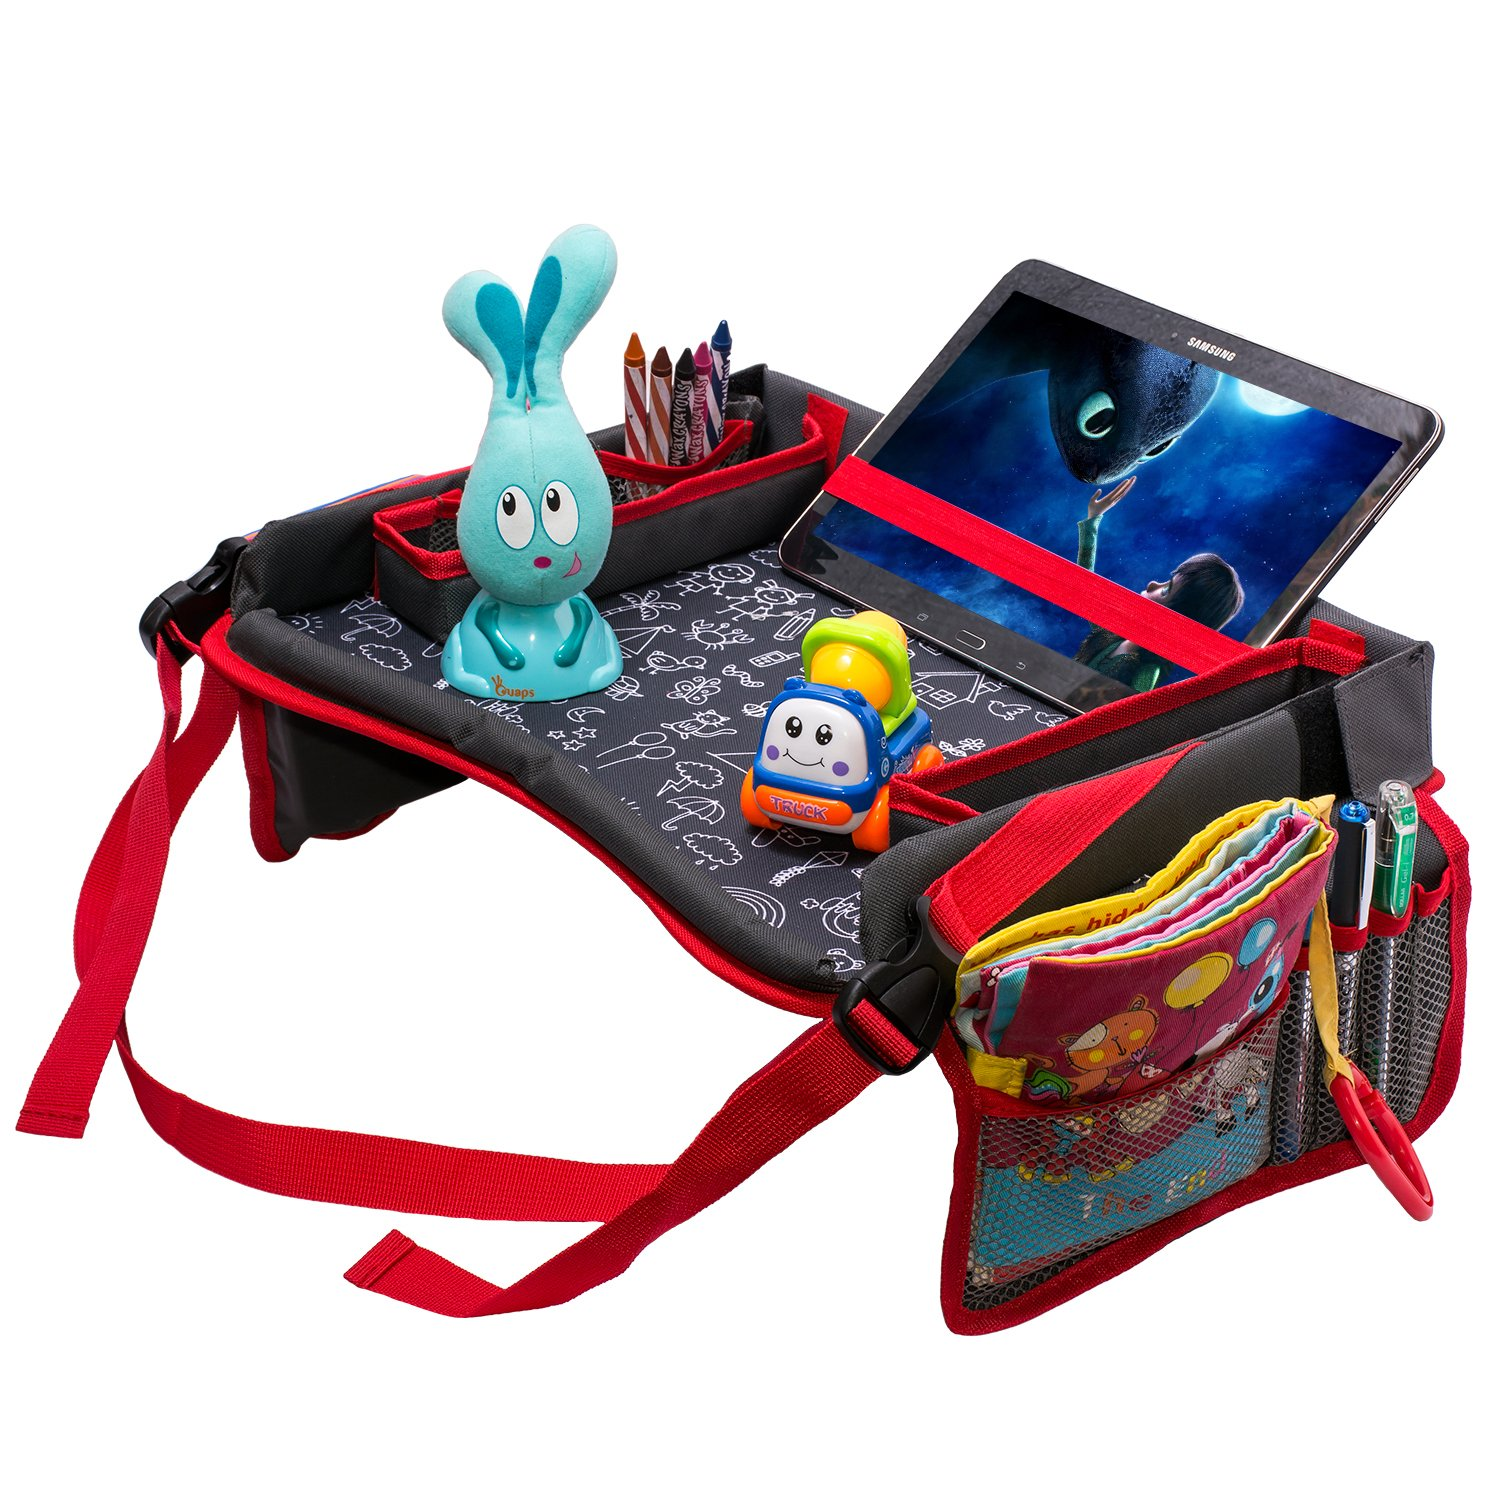 Toddler Car Seat Travel Tray by DMoose (16-Inch-by-12-Inch) – Toy Organizer, Tablet Holder, Reinforced Surface, Sturdy Base &Side Walls, Strong Buckles, Crayon Organizer, Mesh Pockets – Waterproof